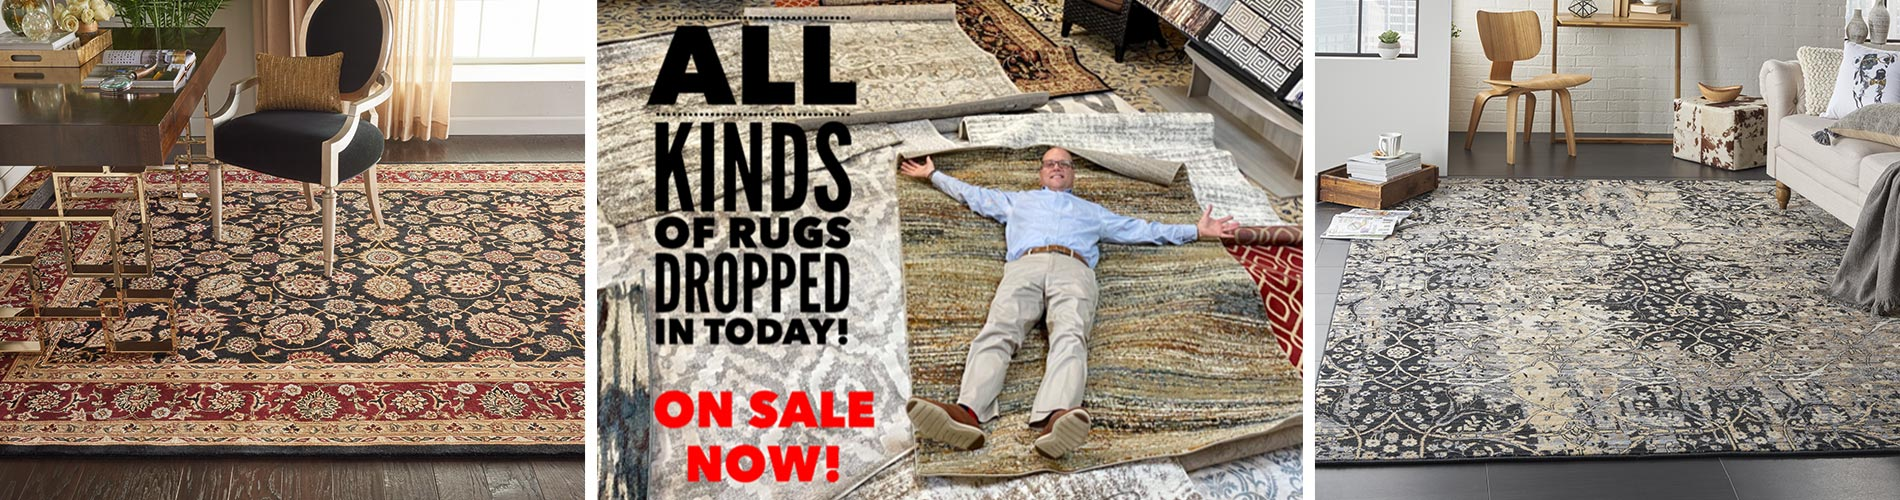 Huge savings on Area Rugs on sale at Abbey Carpet Gallery in Davenport, IA